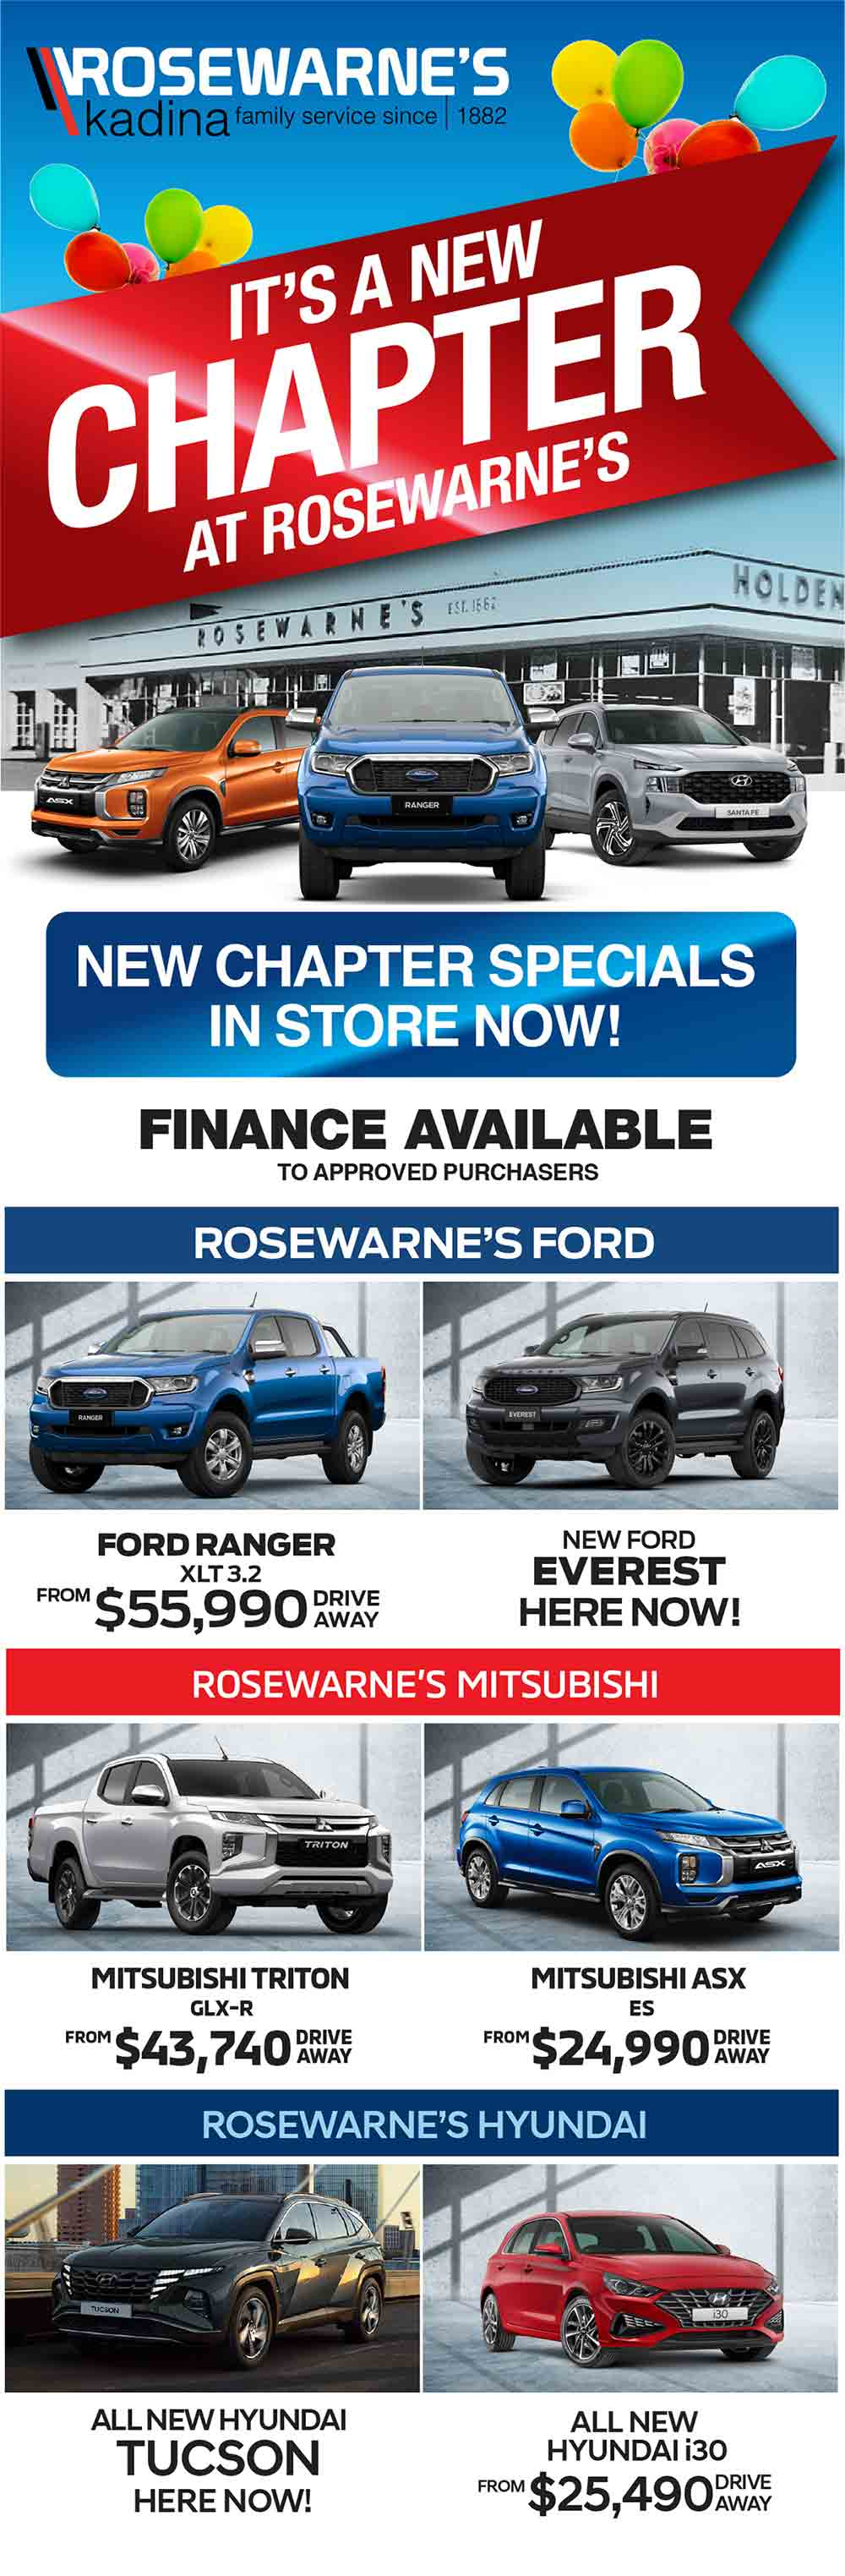 Rosewarne's Kadina | It's A New Chapter At Rosewarne's - Special